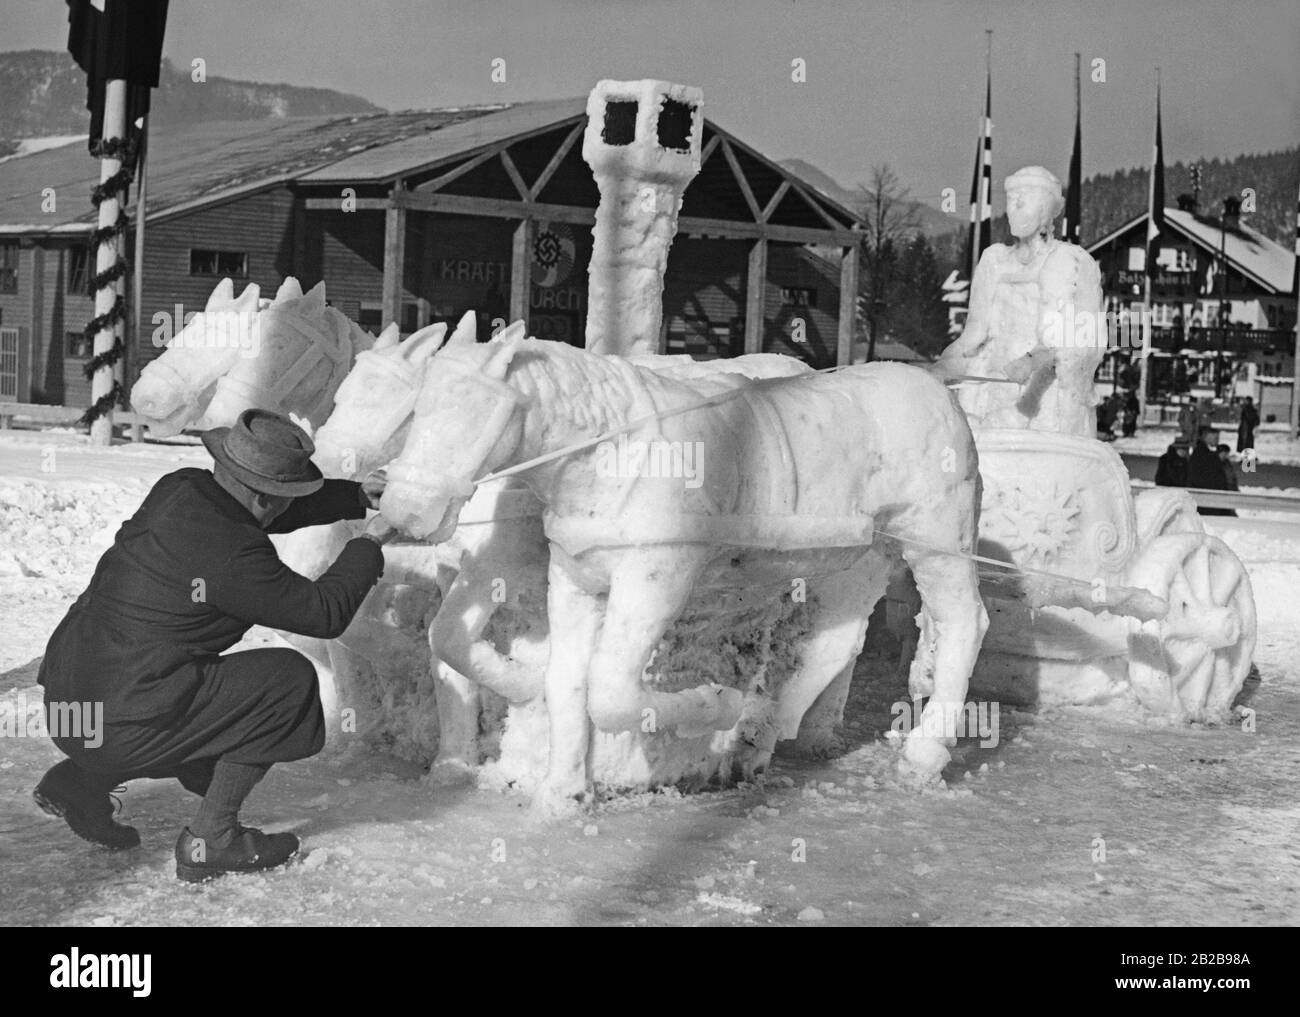 """On the occasion of the Winter Olympics in Garmisch-Partenkirchen an artist created a """"Roman Quadriga"""" snow sculpture. In the background, the K.D.F. Festhalle. Stock Photo"""